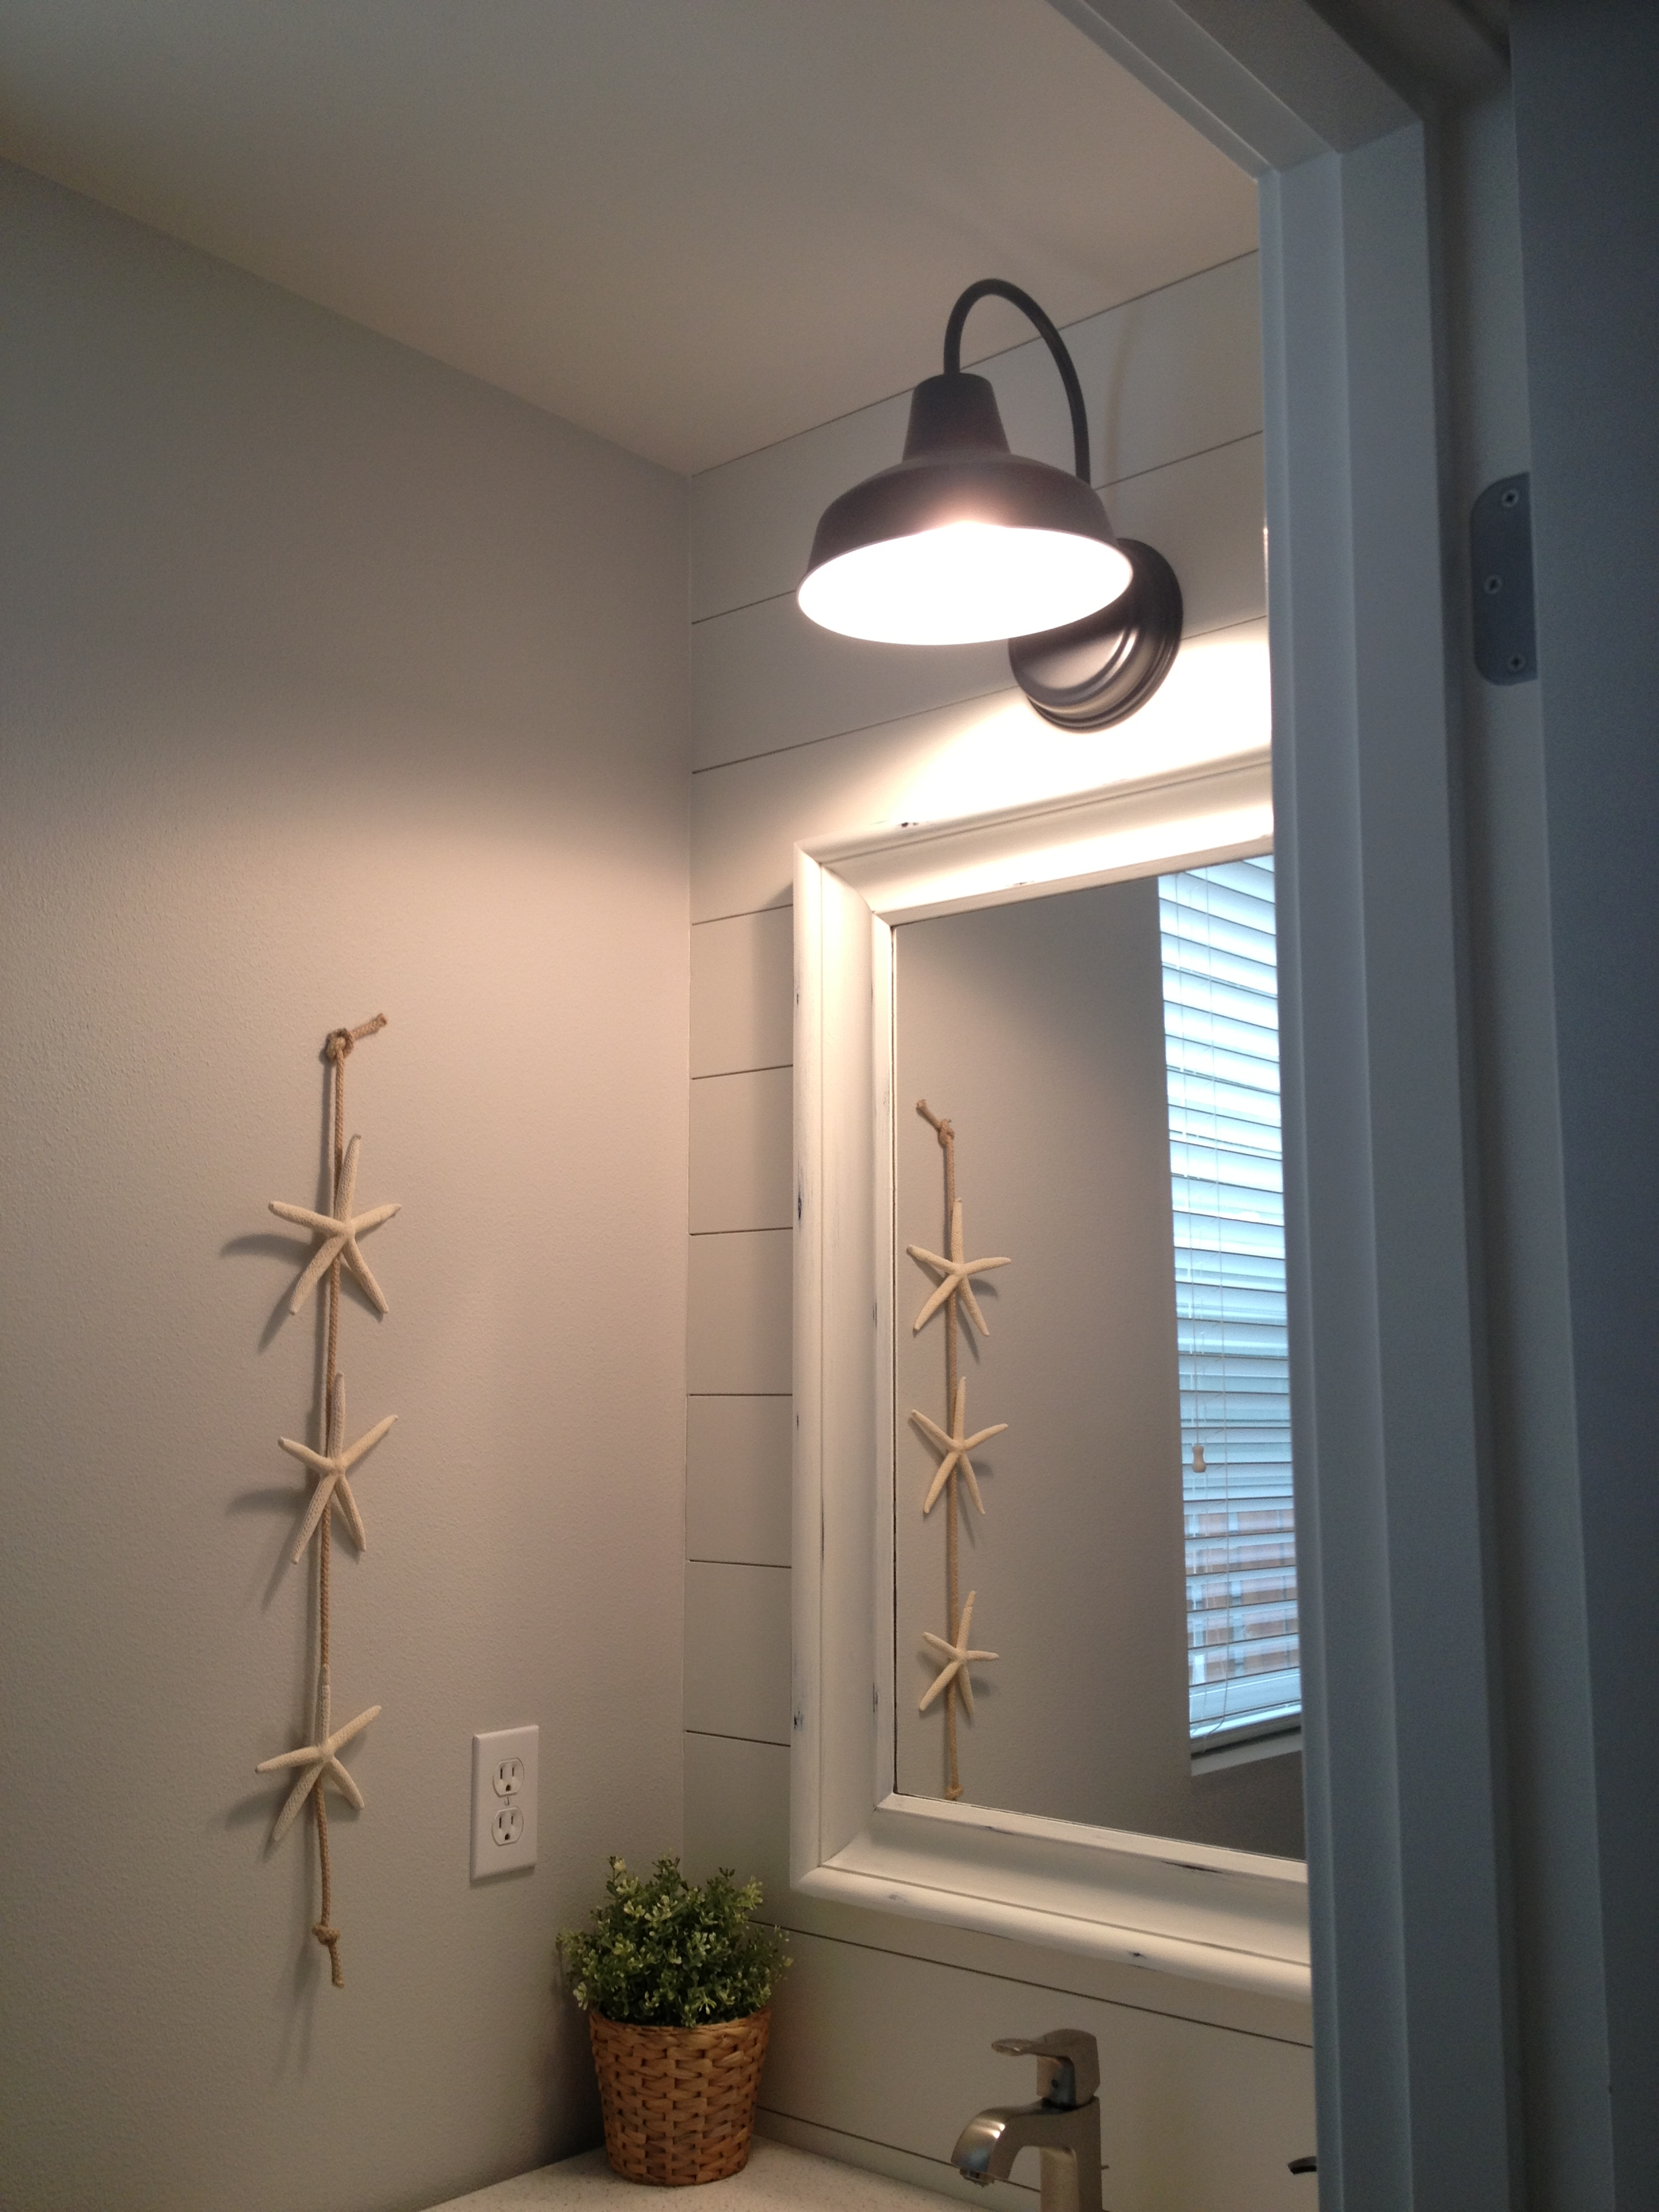 Barn Wall Sconce Lends Farmhouse Look To Powder Room Remake Inspiration Barn Light Electric